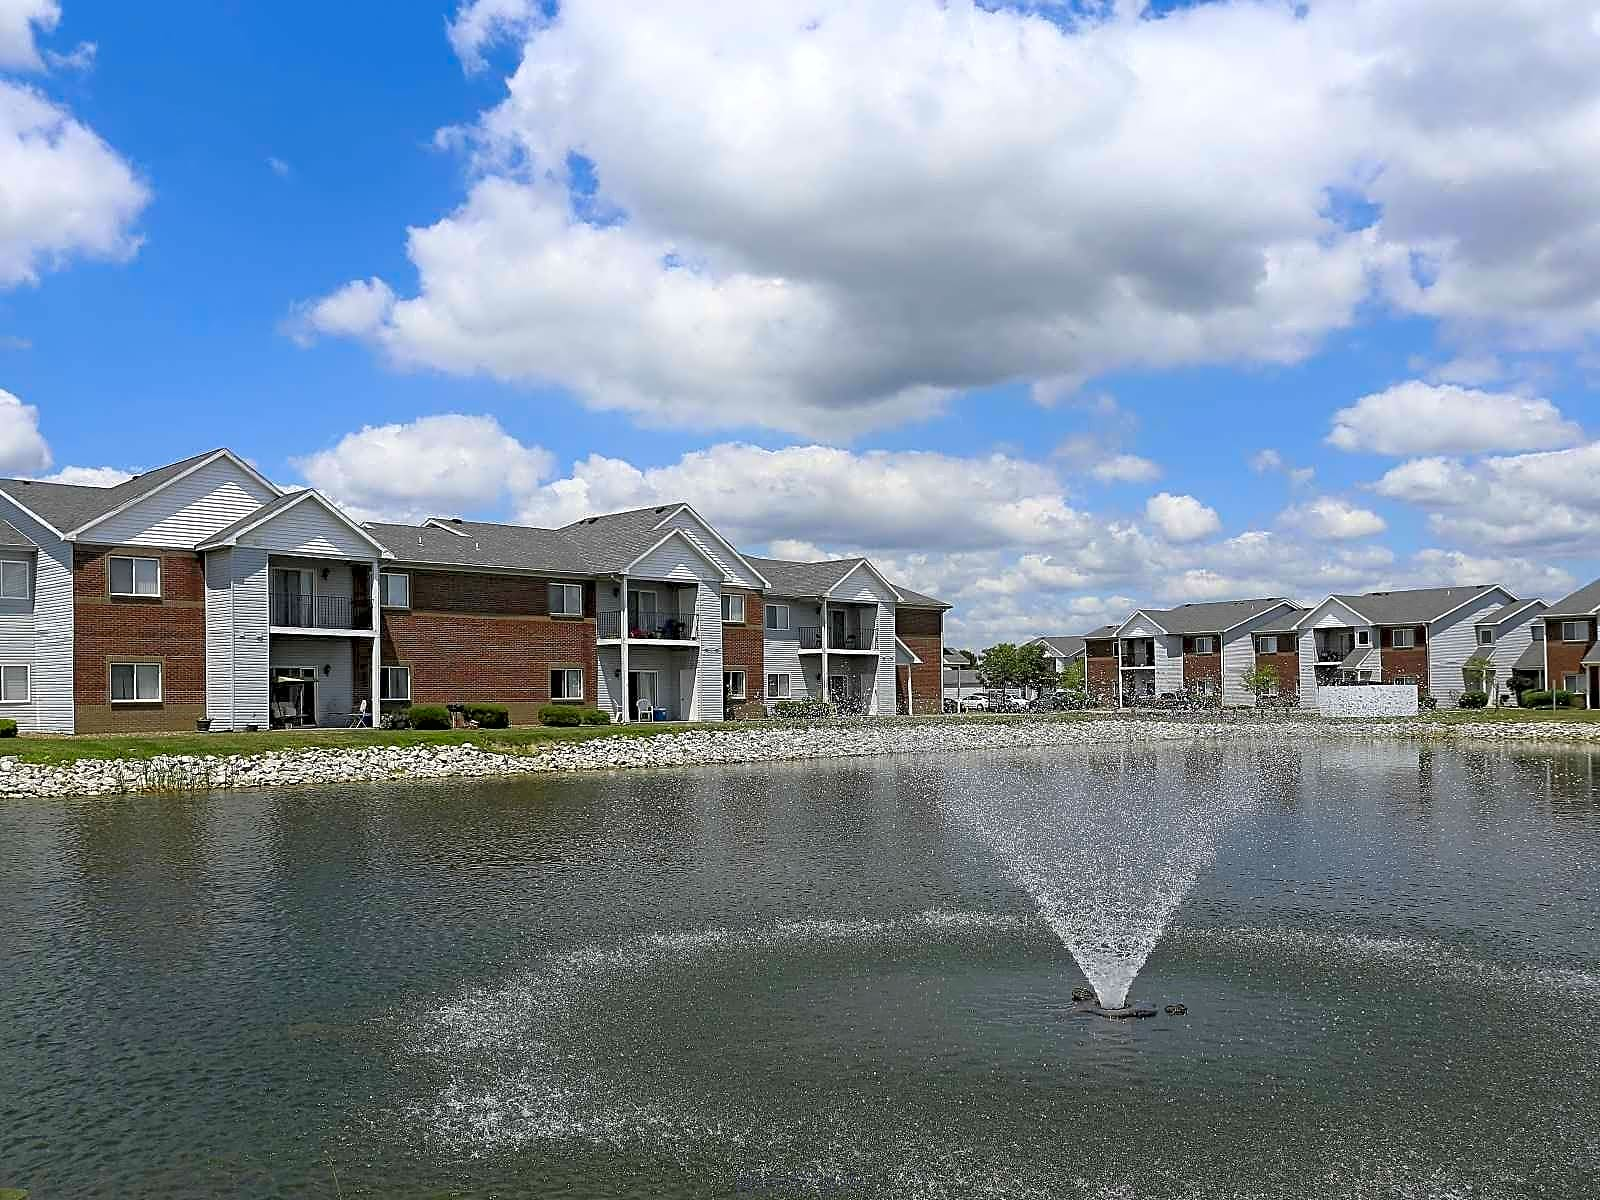 Apartments Near Ross Medical Education Center-Evansville Cross Lake Apartments for Ross Medical Education Center-Evansville Students in Evansville, IN